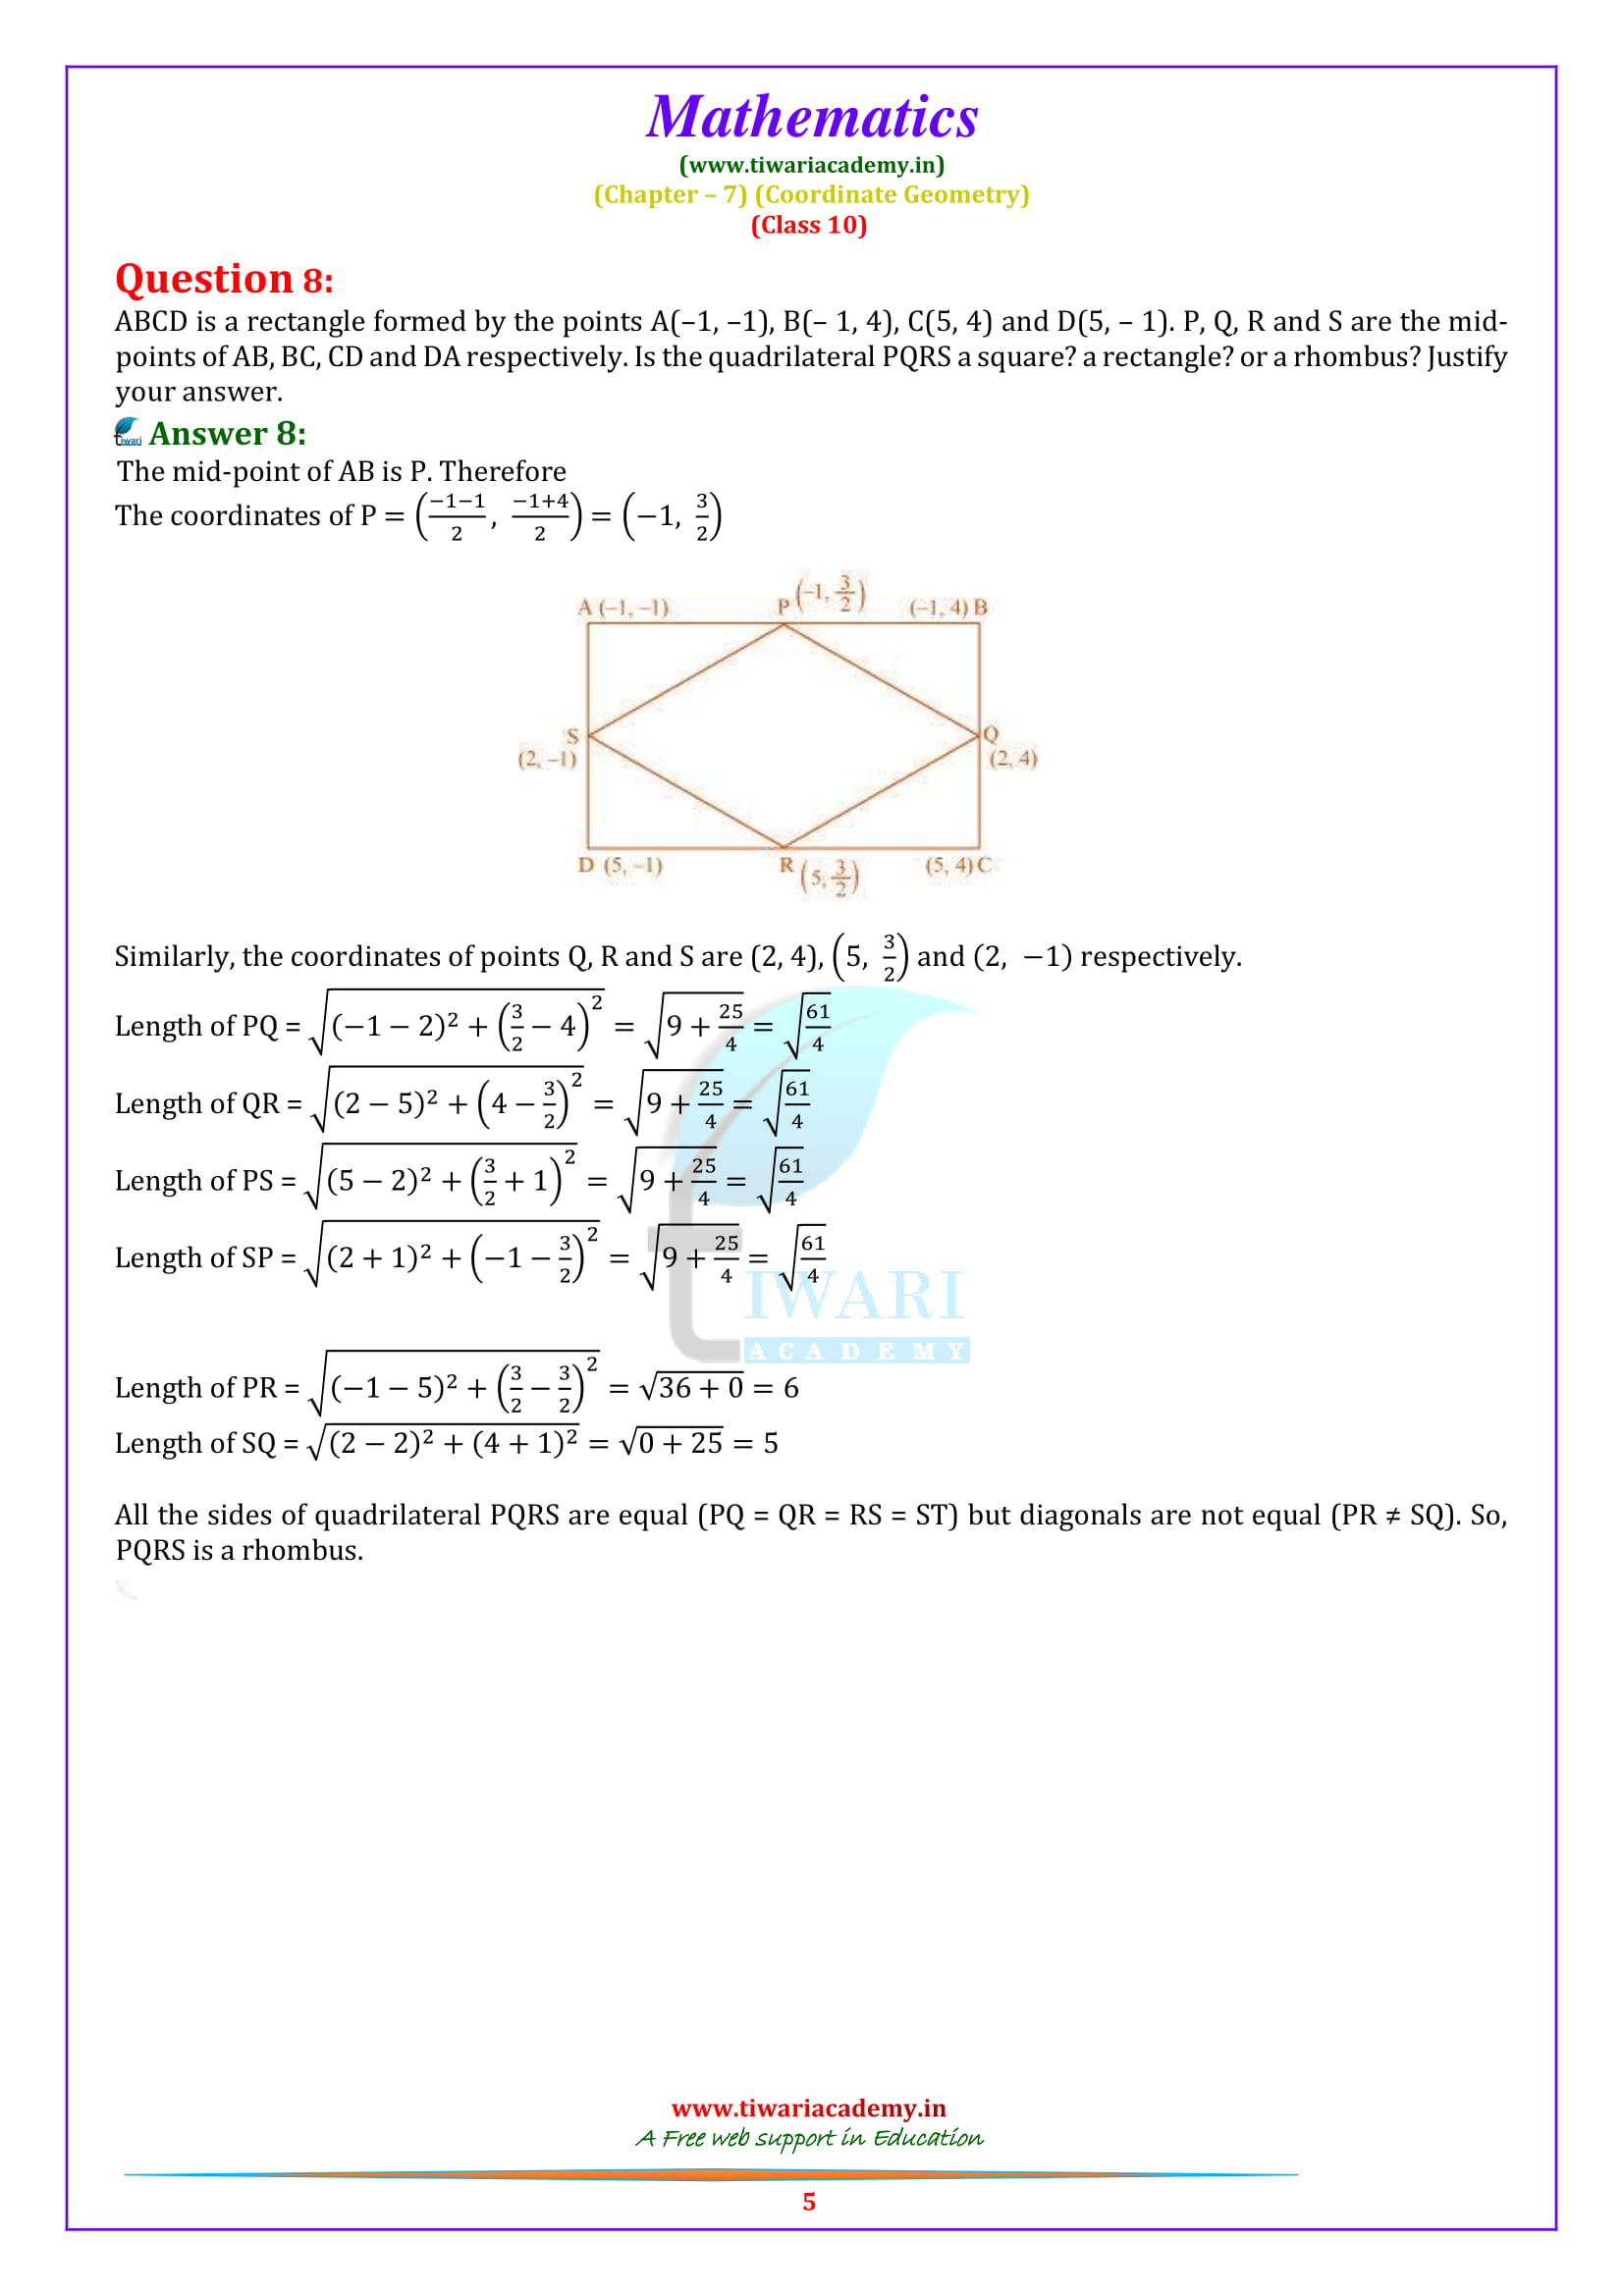 NCERT Solutions for class 10 Maths Exercise 7.4 question 1, 2, 3, 4, 5, 6, 7, 8., 9